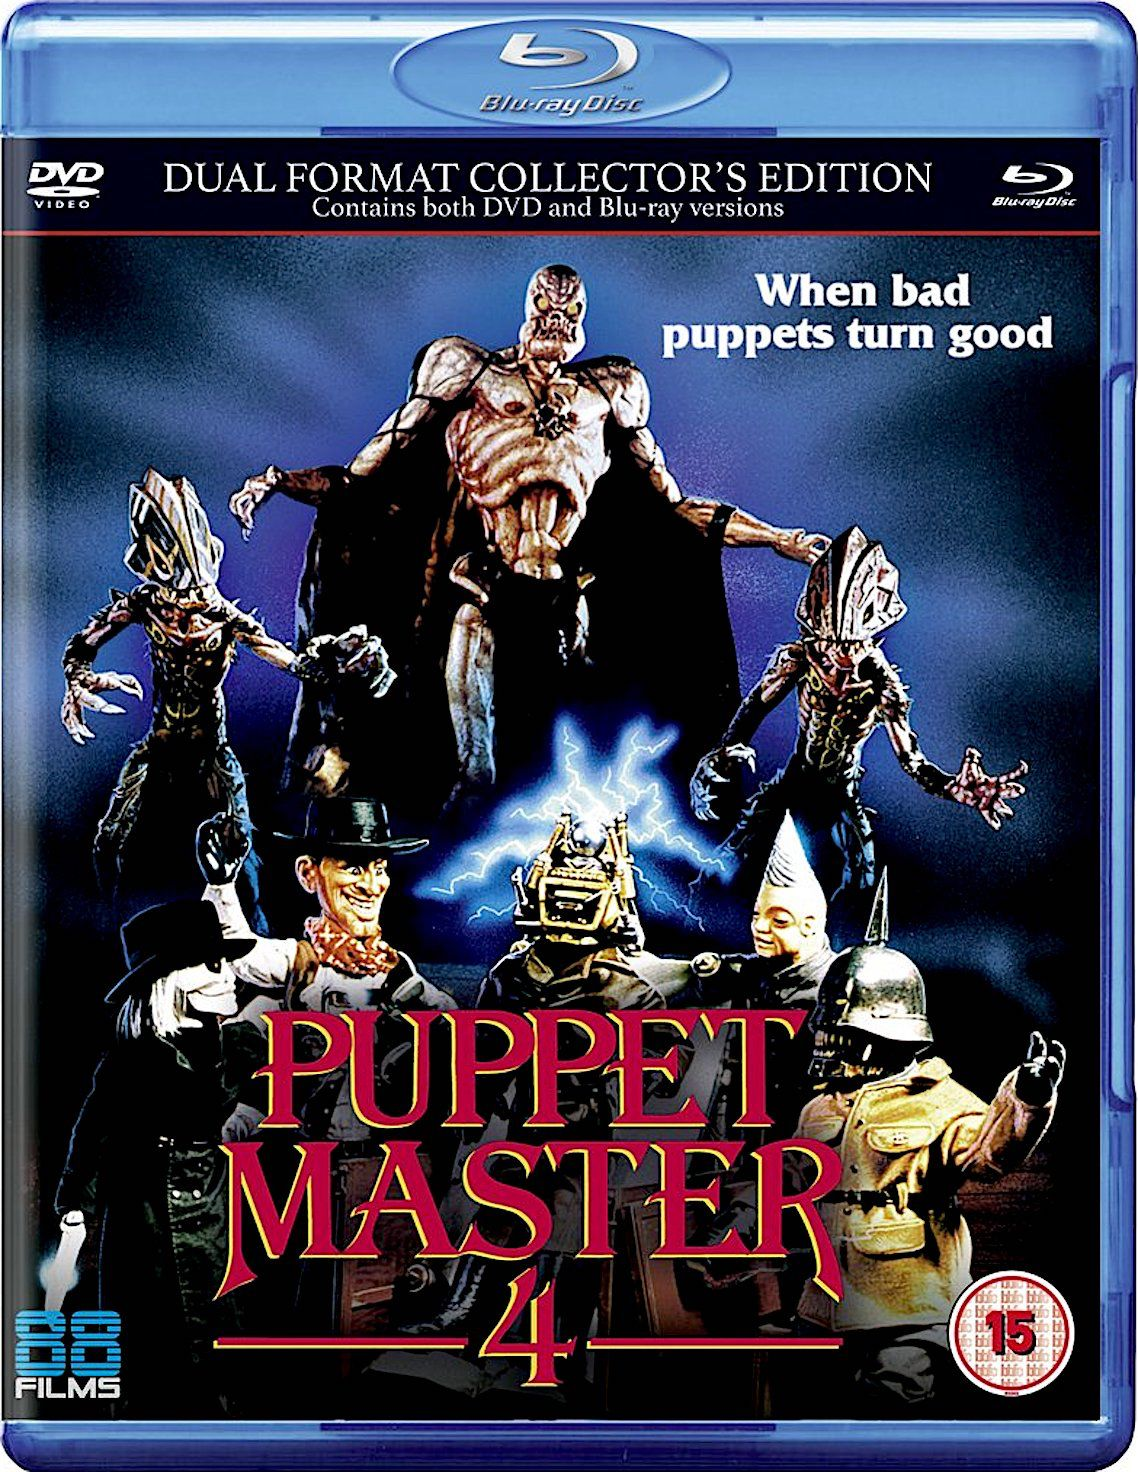 PUPPET MASTER 4 BLURAY (With images) Blu ray, I movie